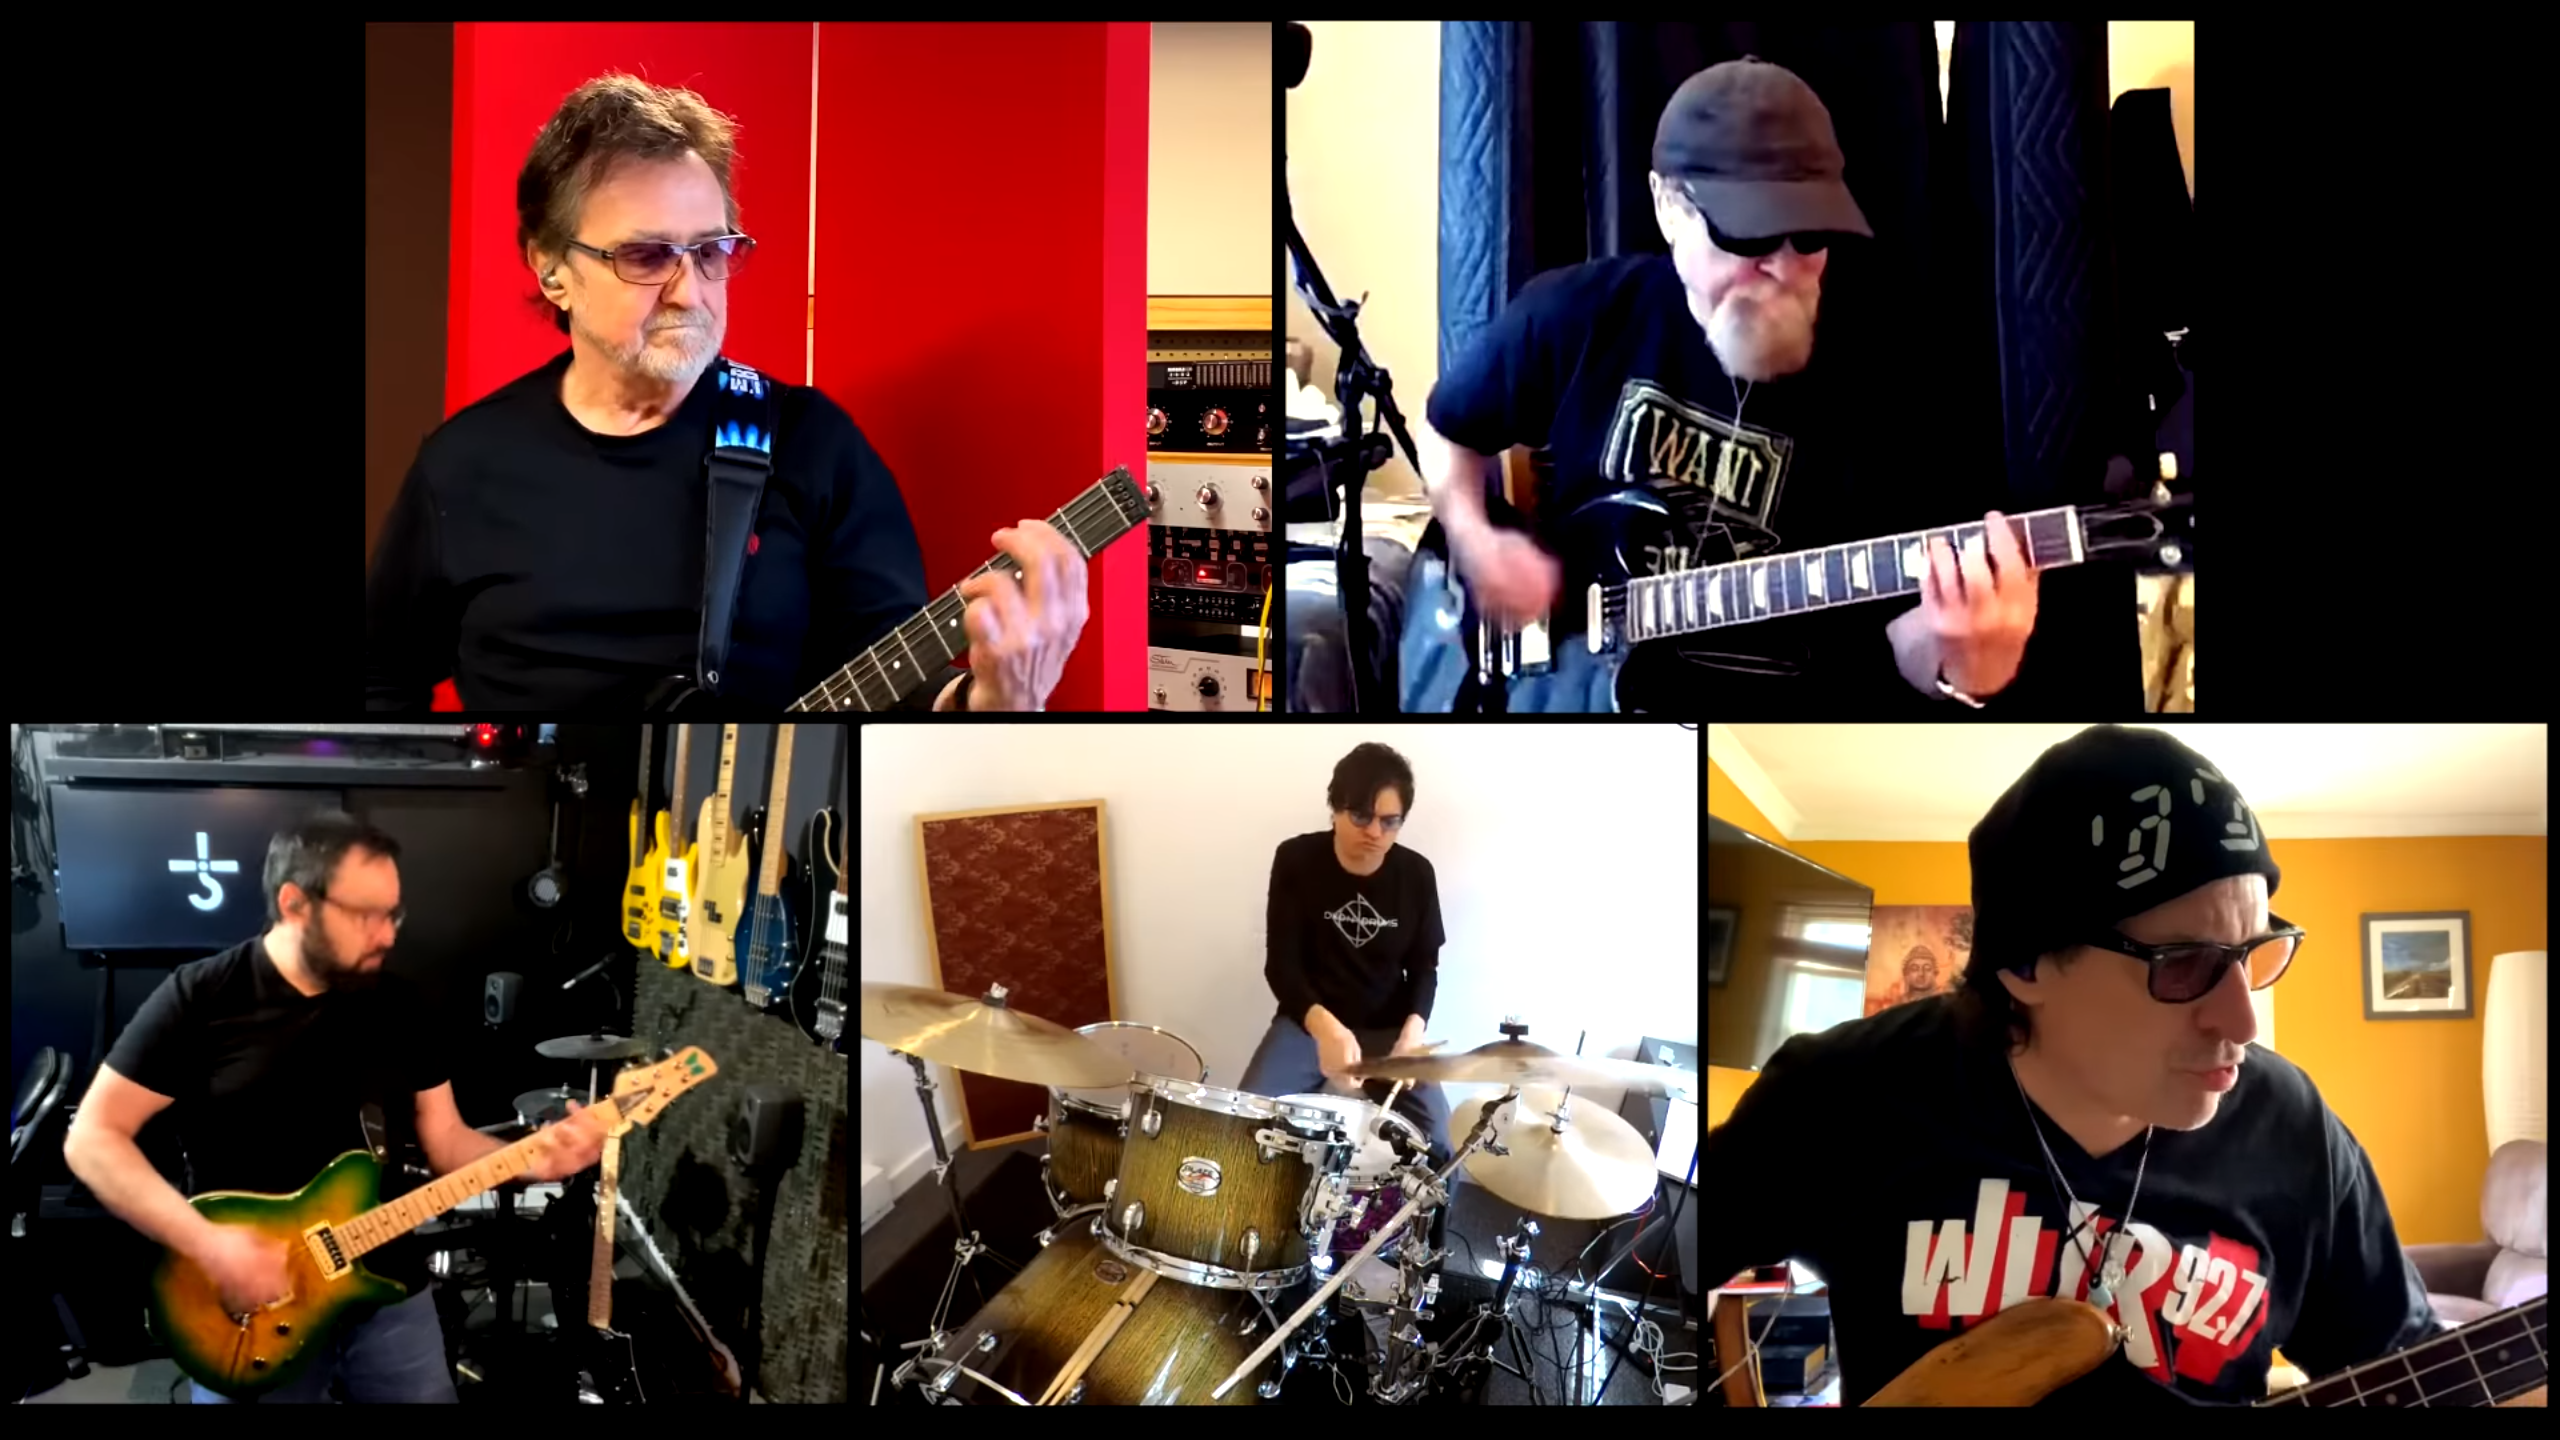 And Now, Blue Öyster Cult's 'Godzilla,' Performed By The Band Live At Home